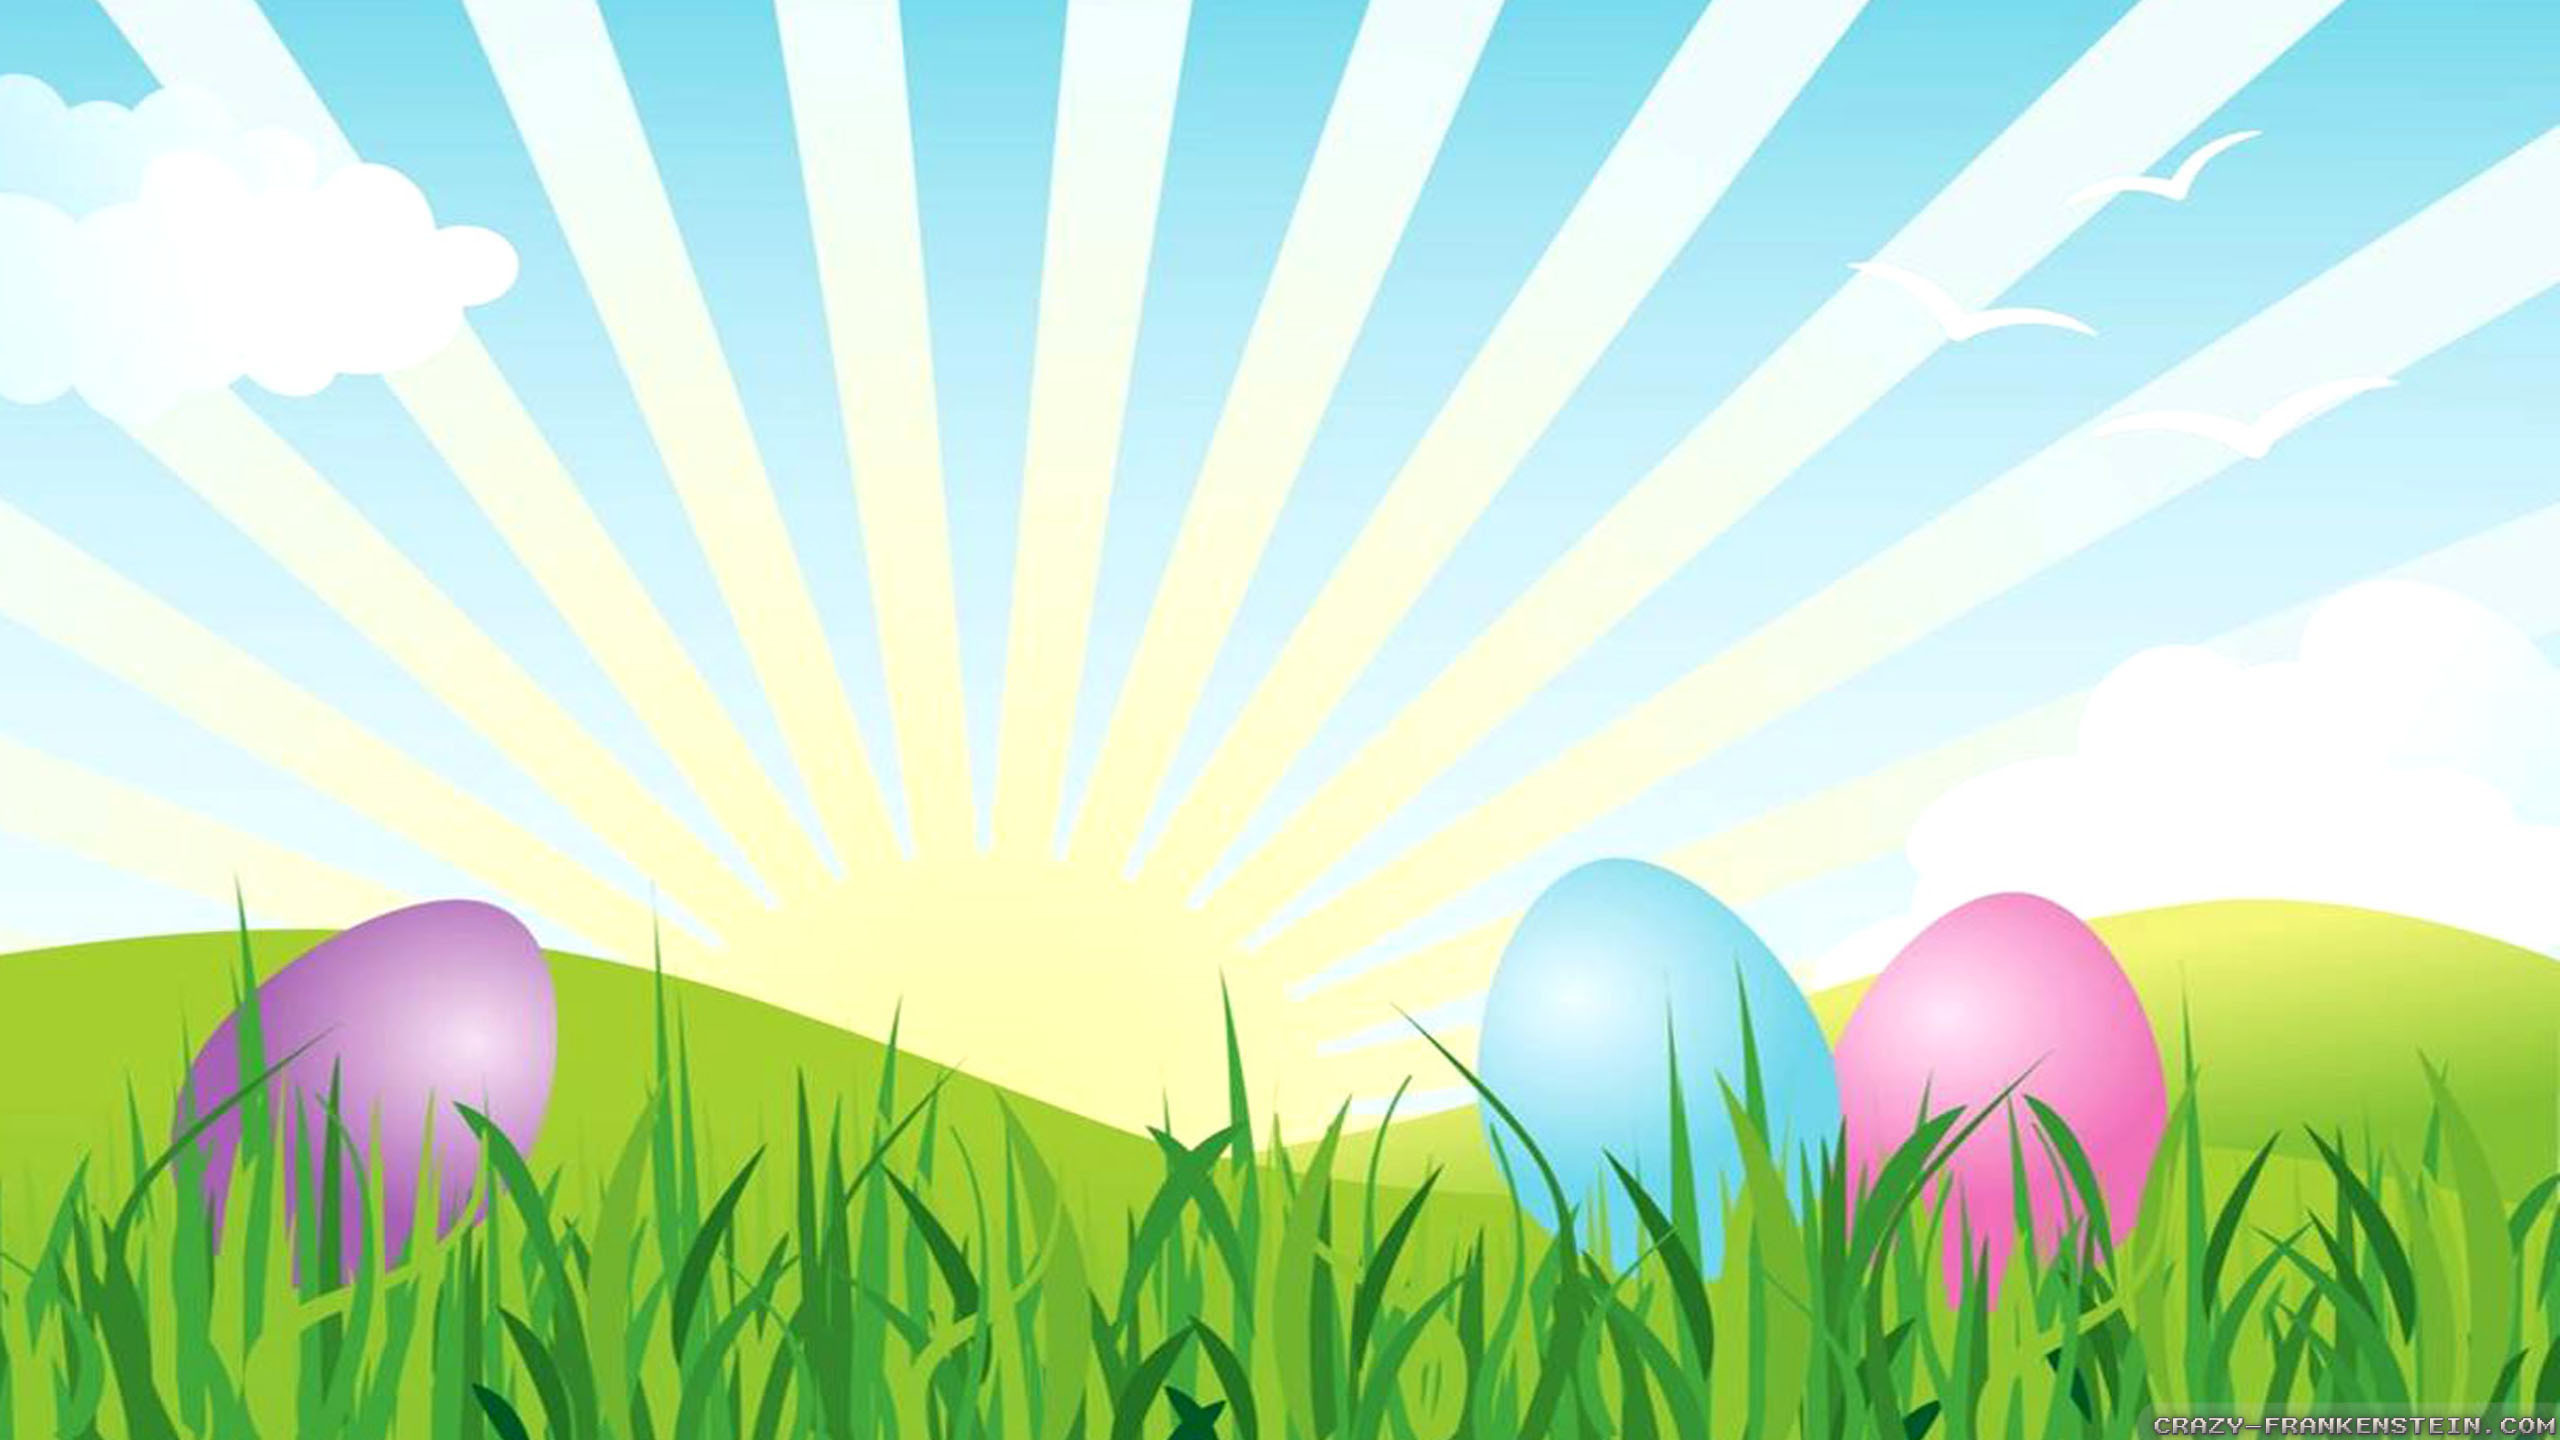 2560x1440 Free Christian Easter Wallpapers Wallpaper 1024A 734 43